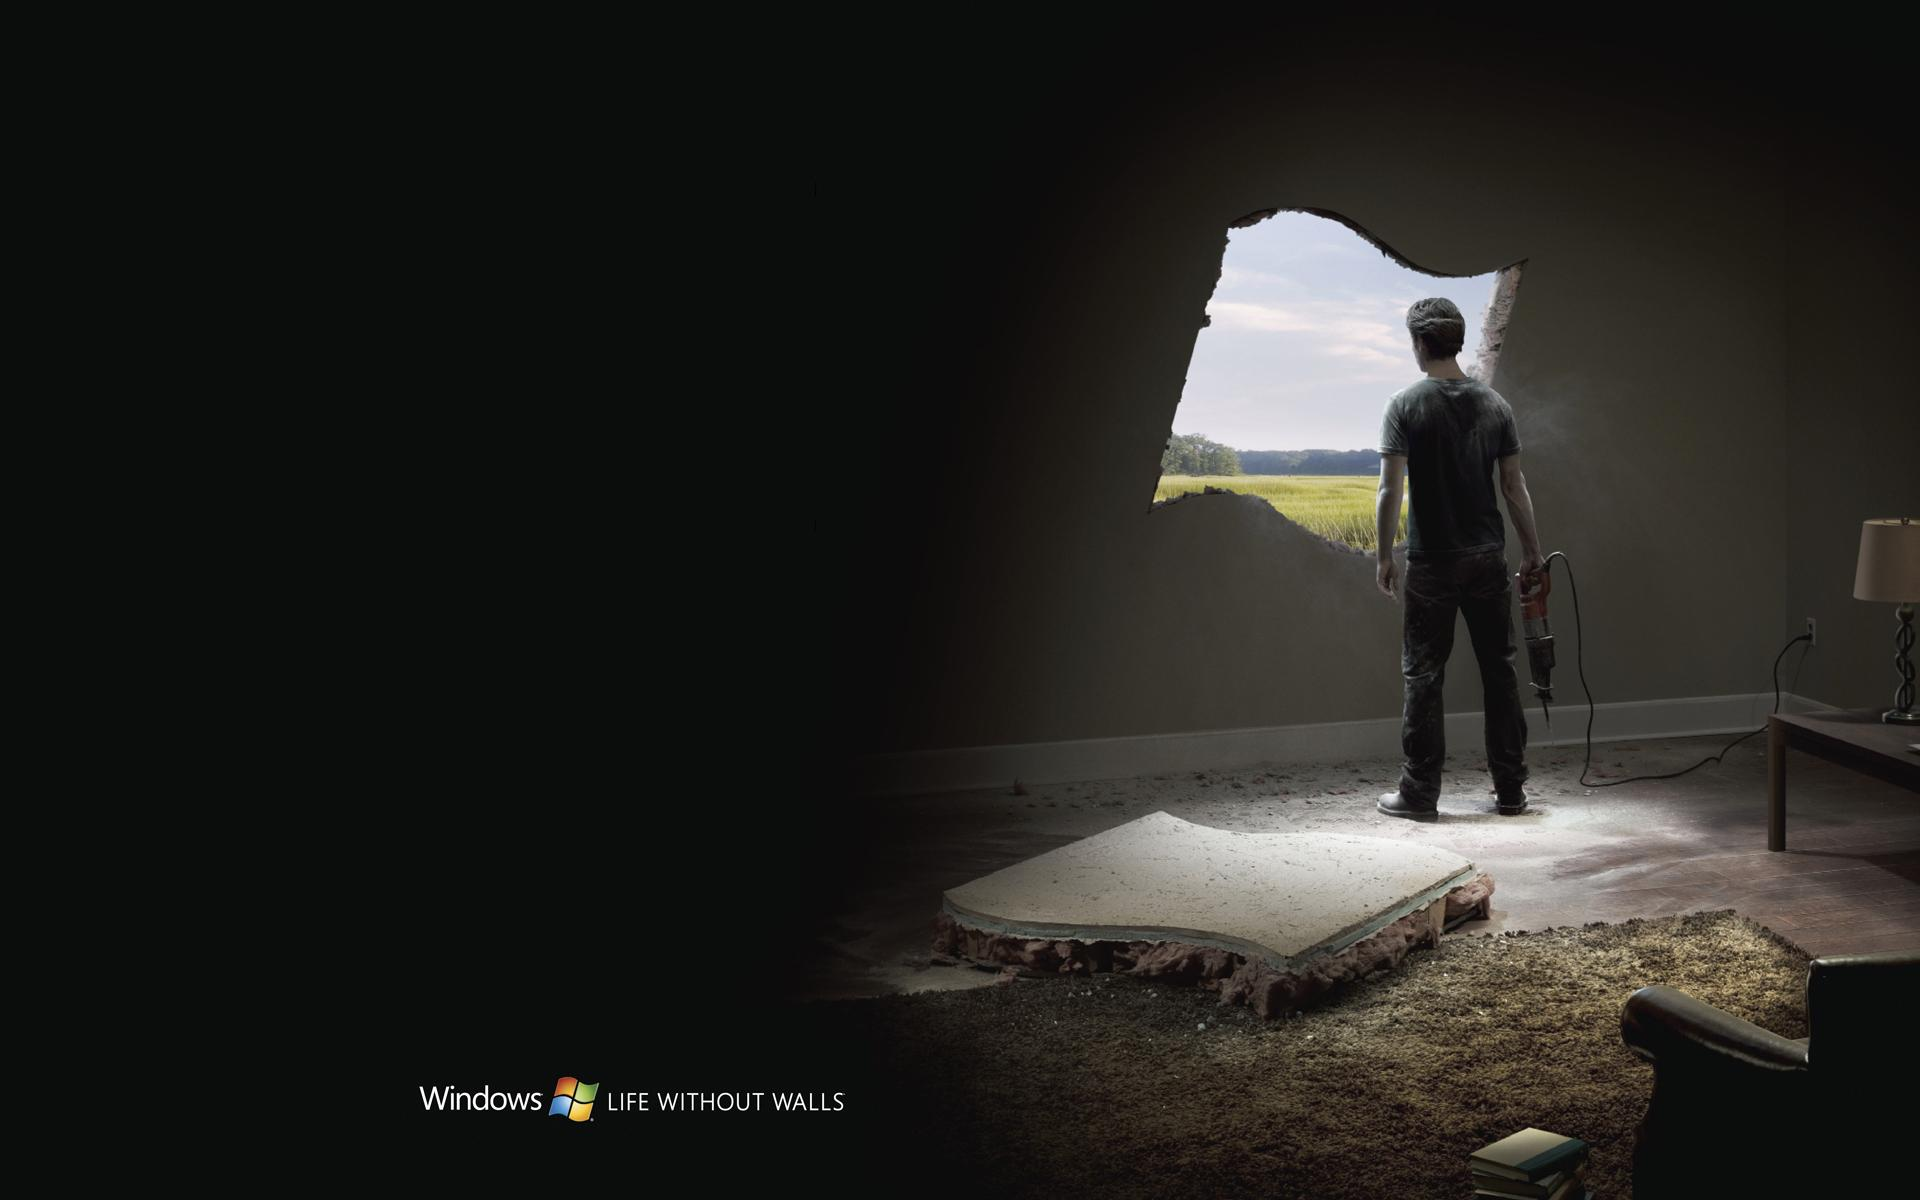 Download Cool Windows vs Walls Wallpapers Keith Combs Blahg Site 1920x1200